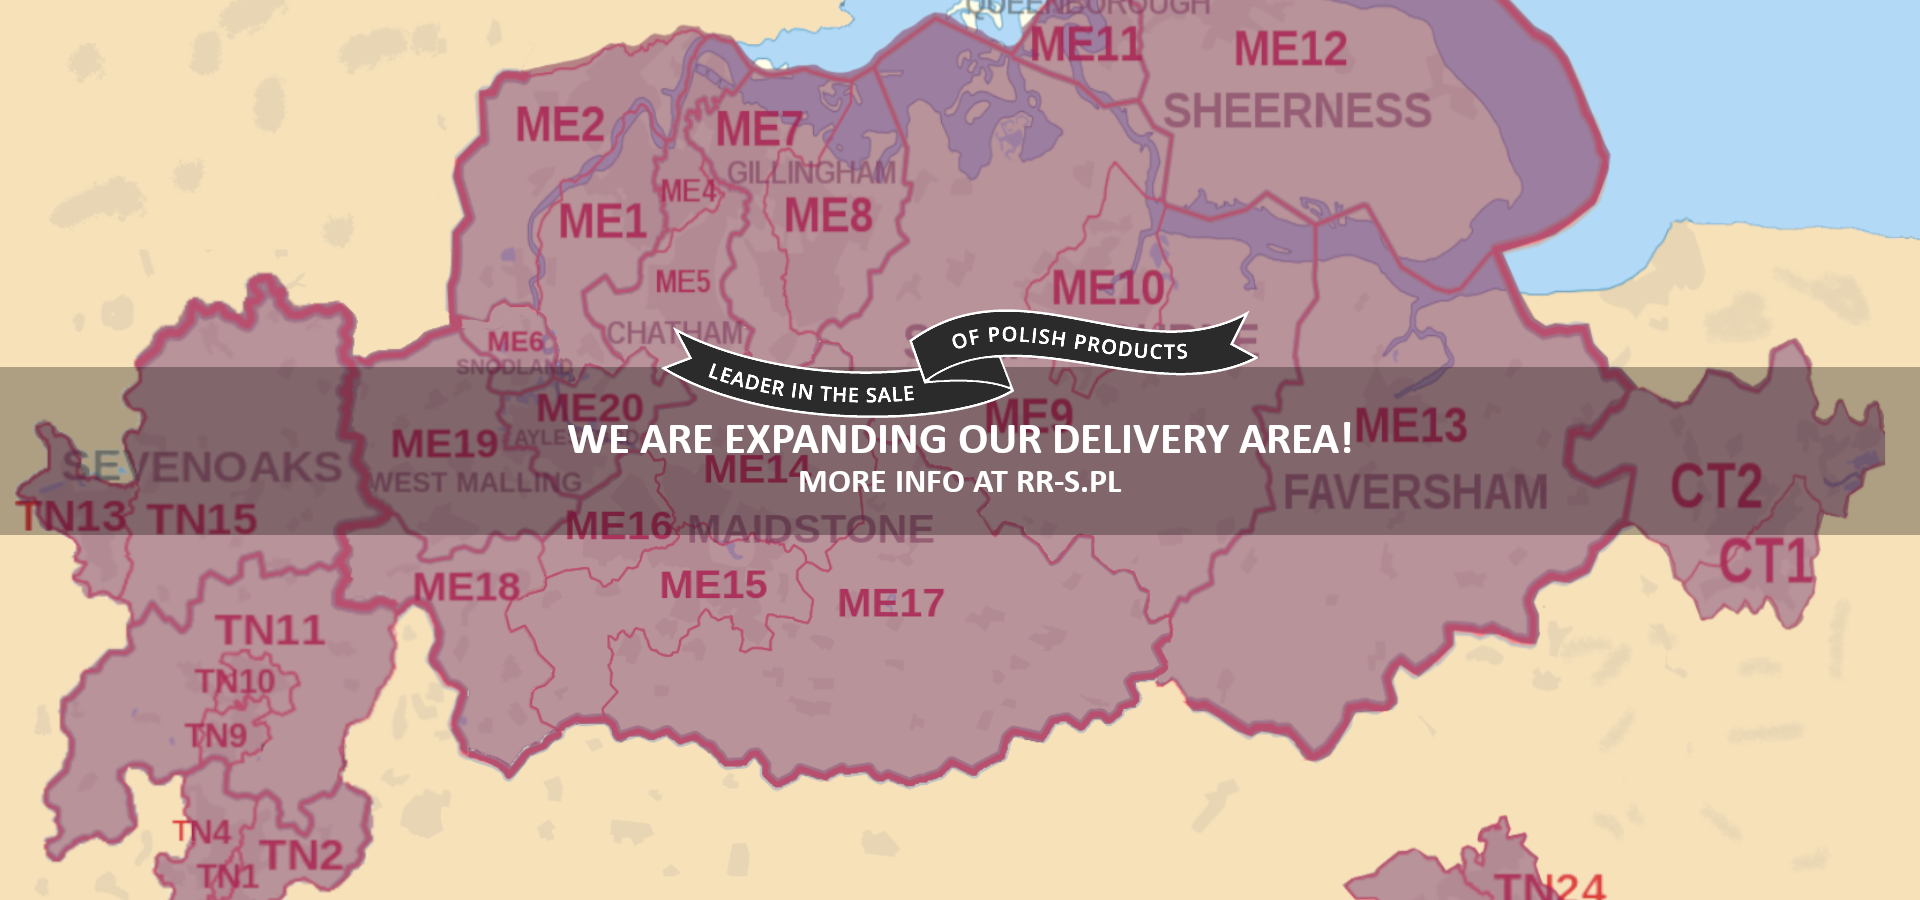 We are expanding our delivery area, more info at rr-s.pl